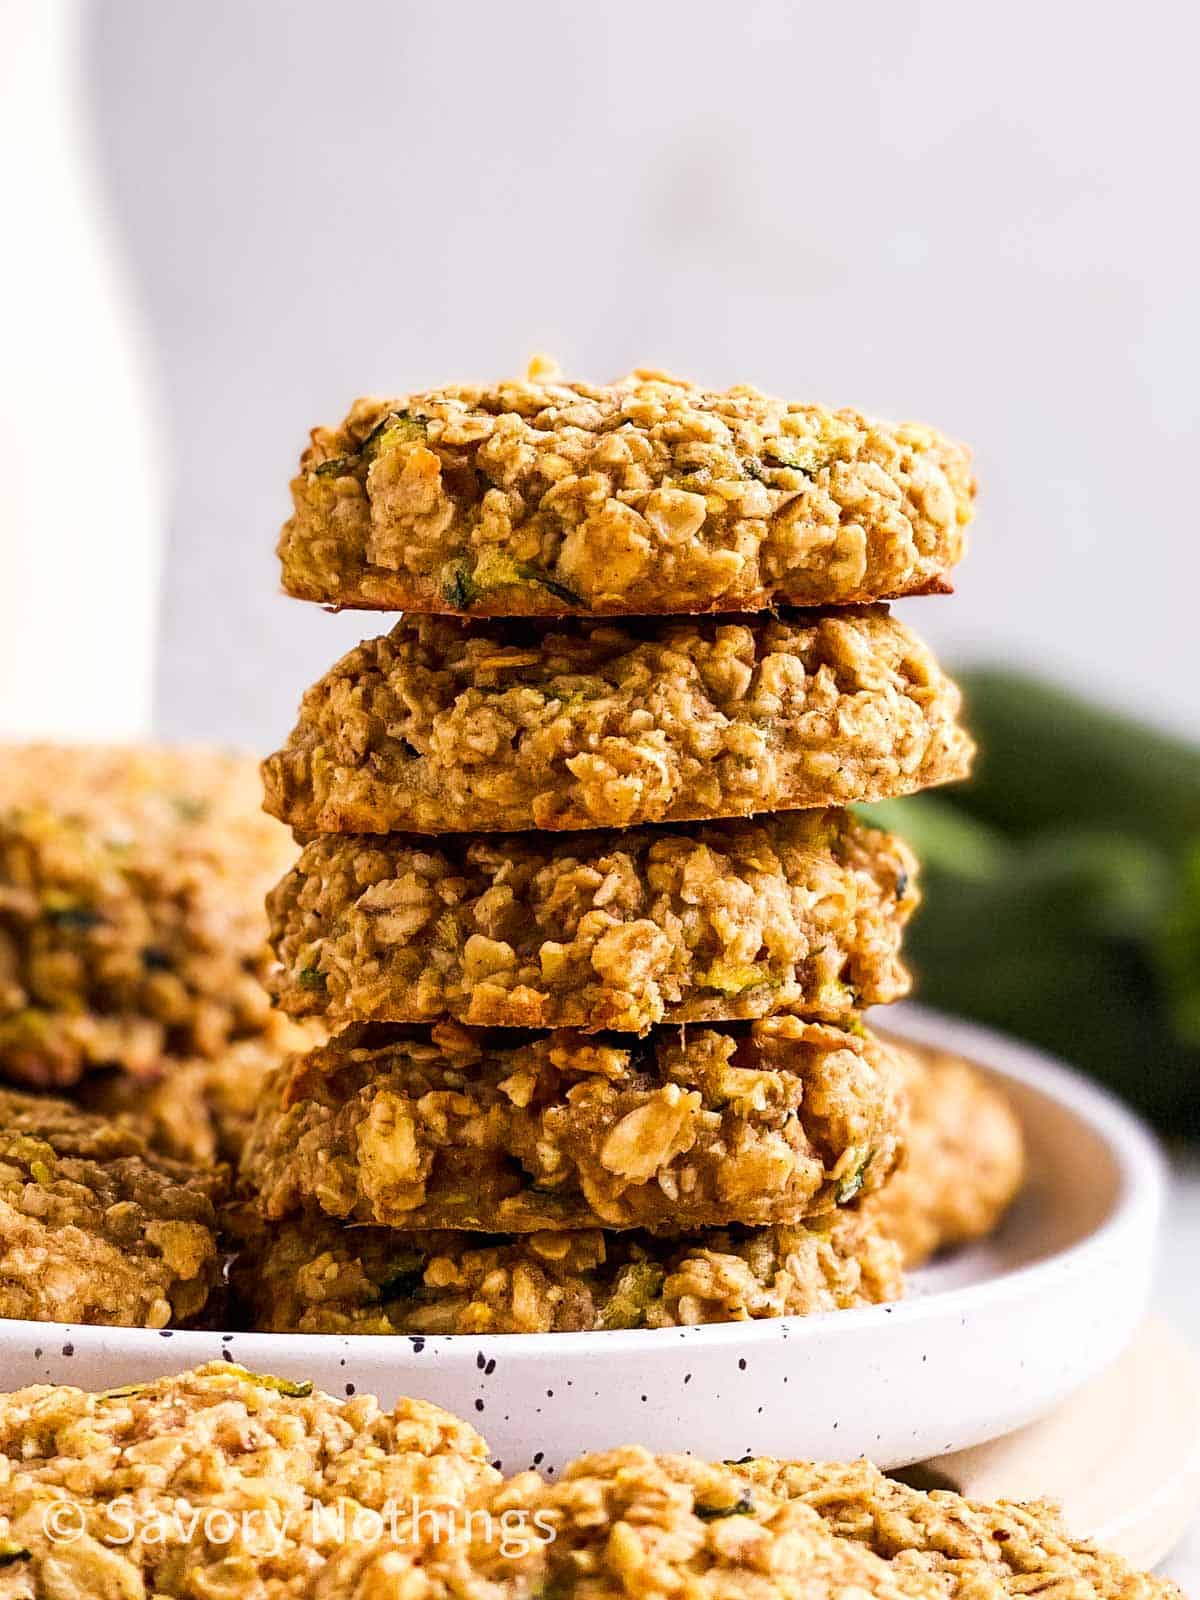 stack of zucchini bread breakfast cookies on white plate in front of milk bottle and fresh zucchini